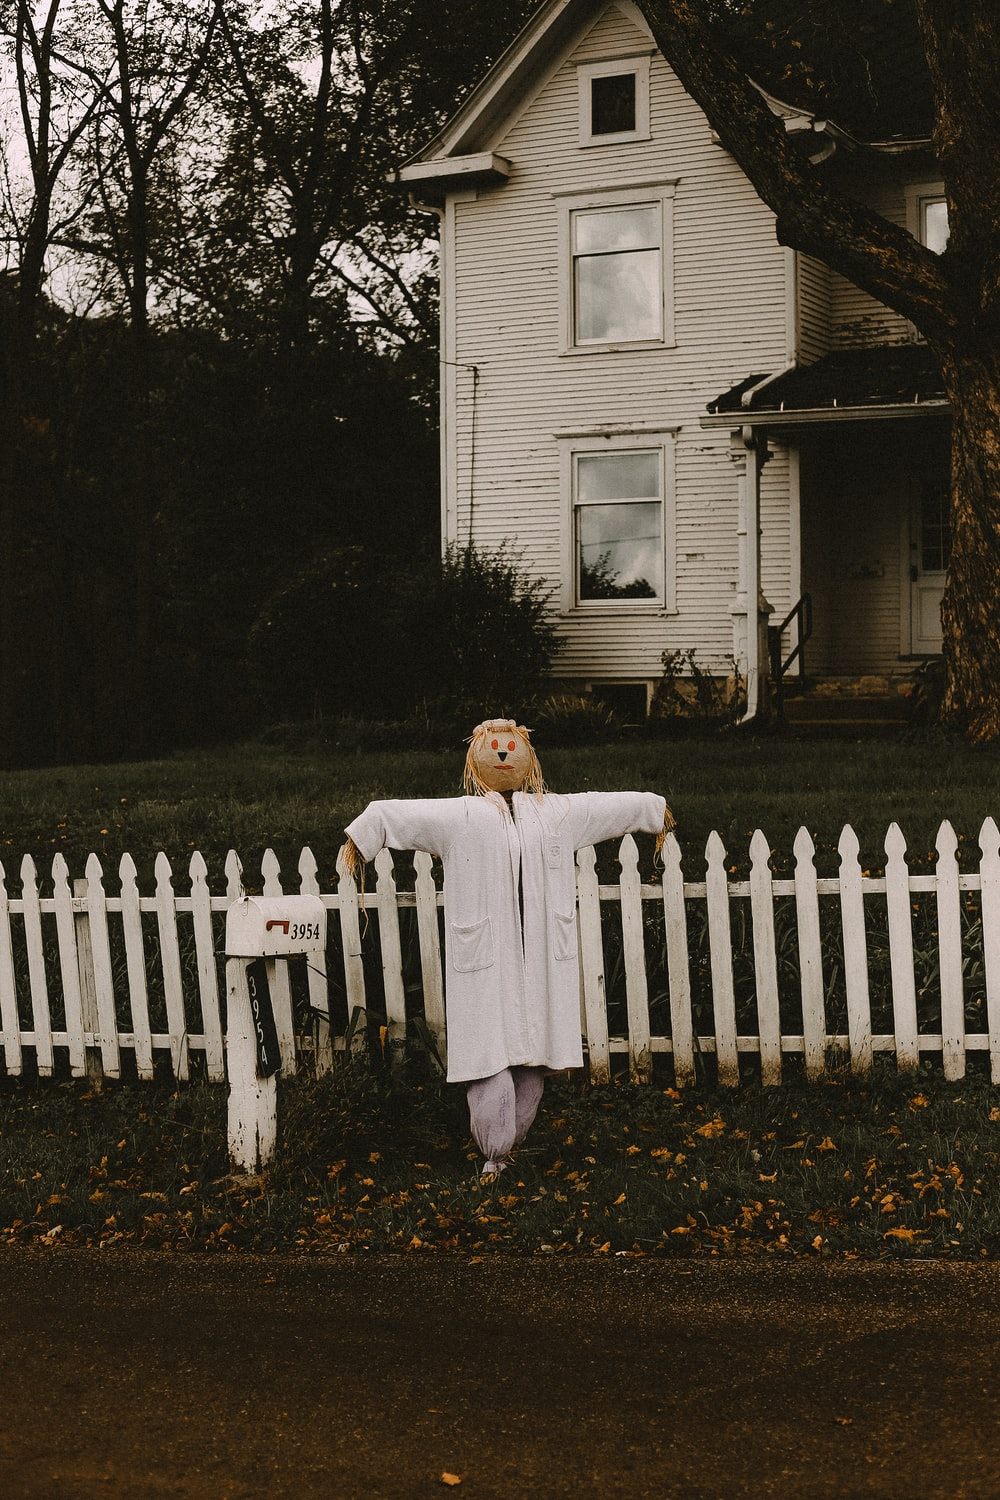 scarecrow in front of white wooden house